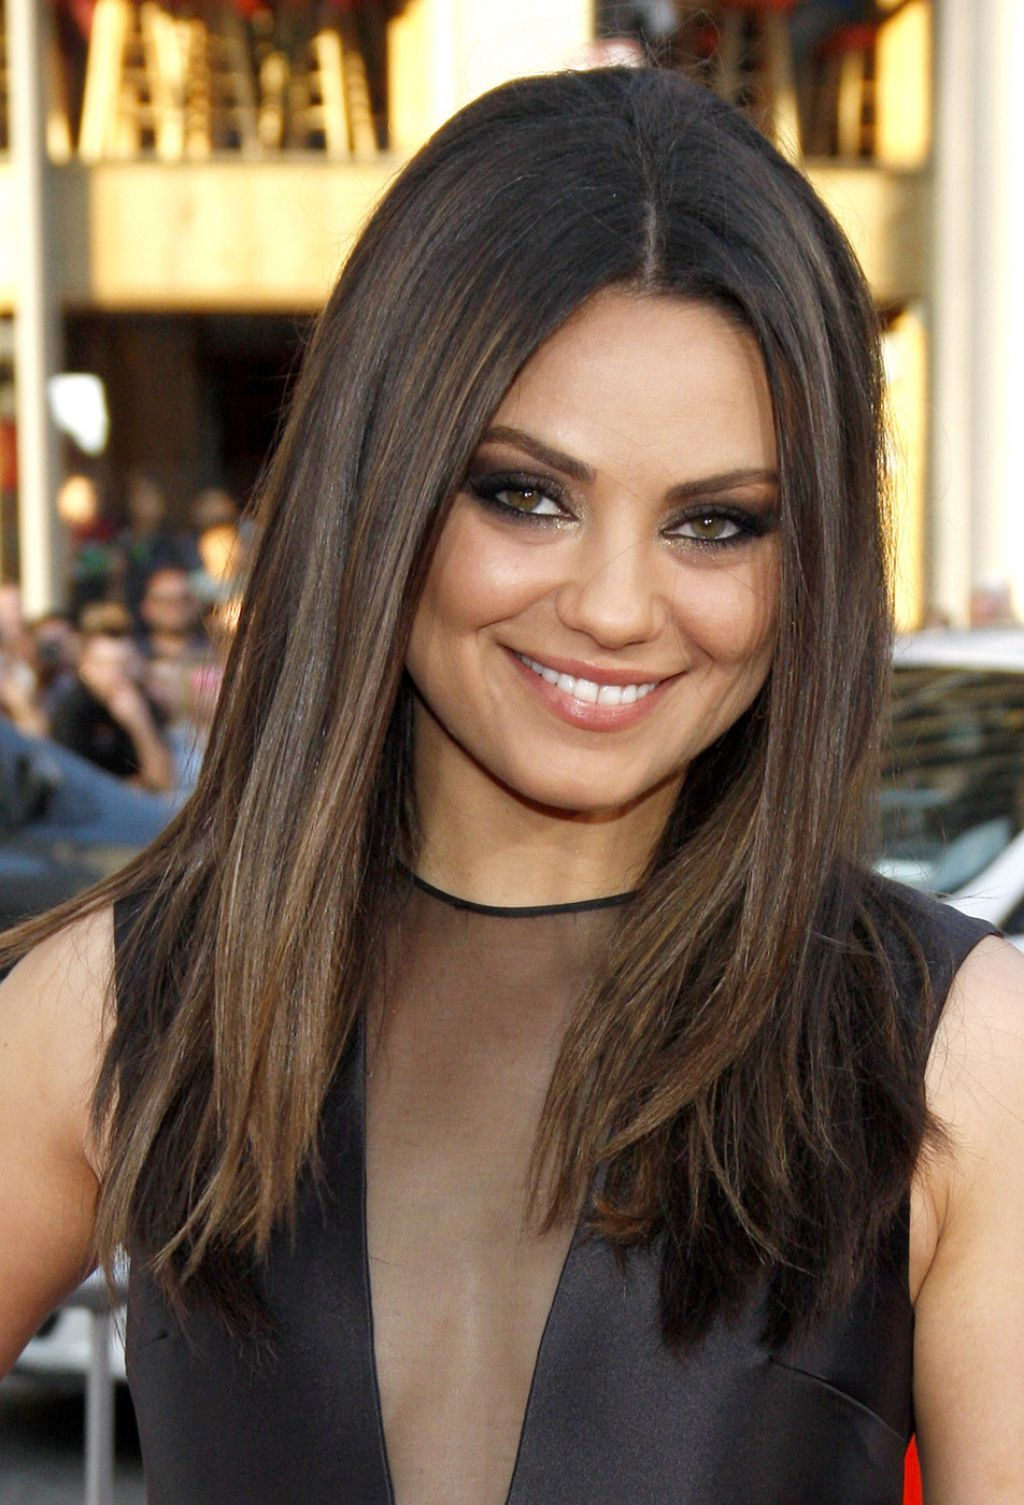 mila kunis haircut google search hair pinterest. Black Bedroom Furniture Sets. Home Design Ideas